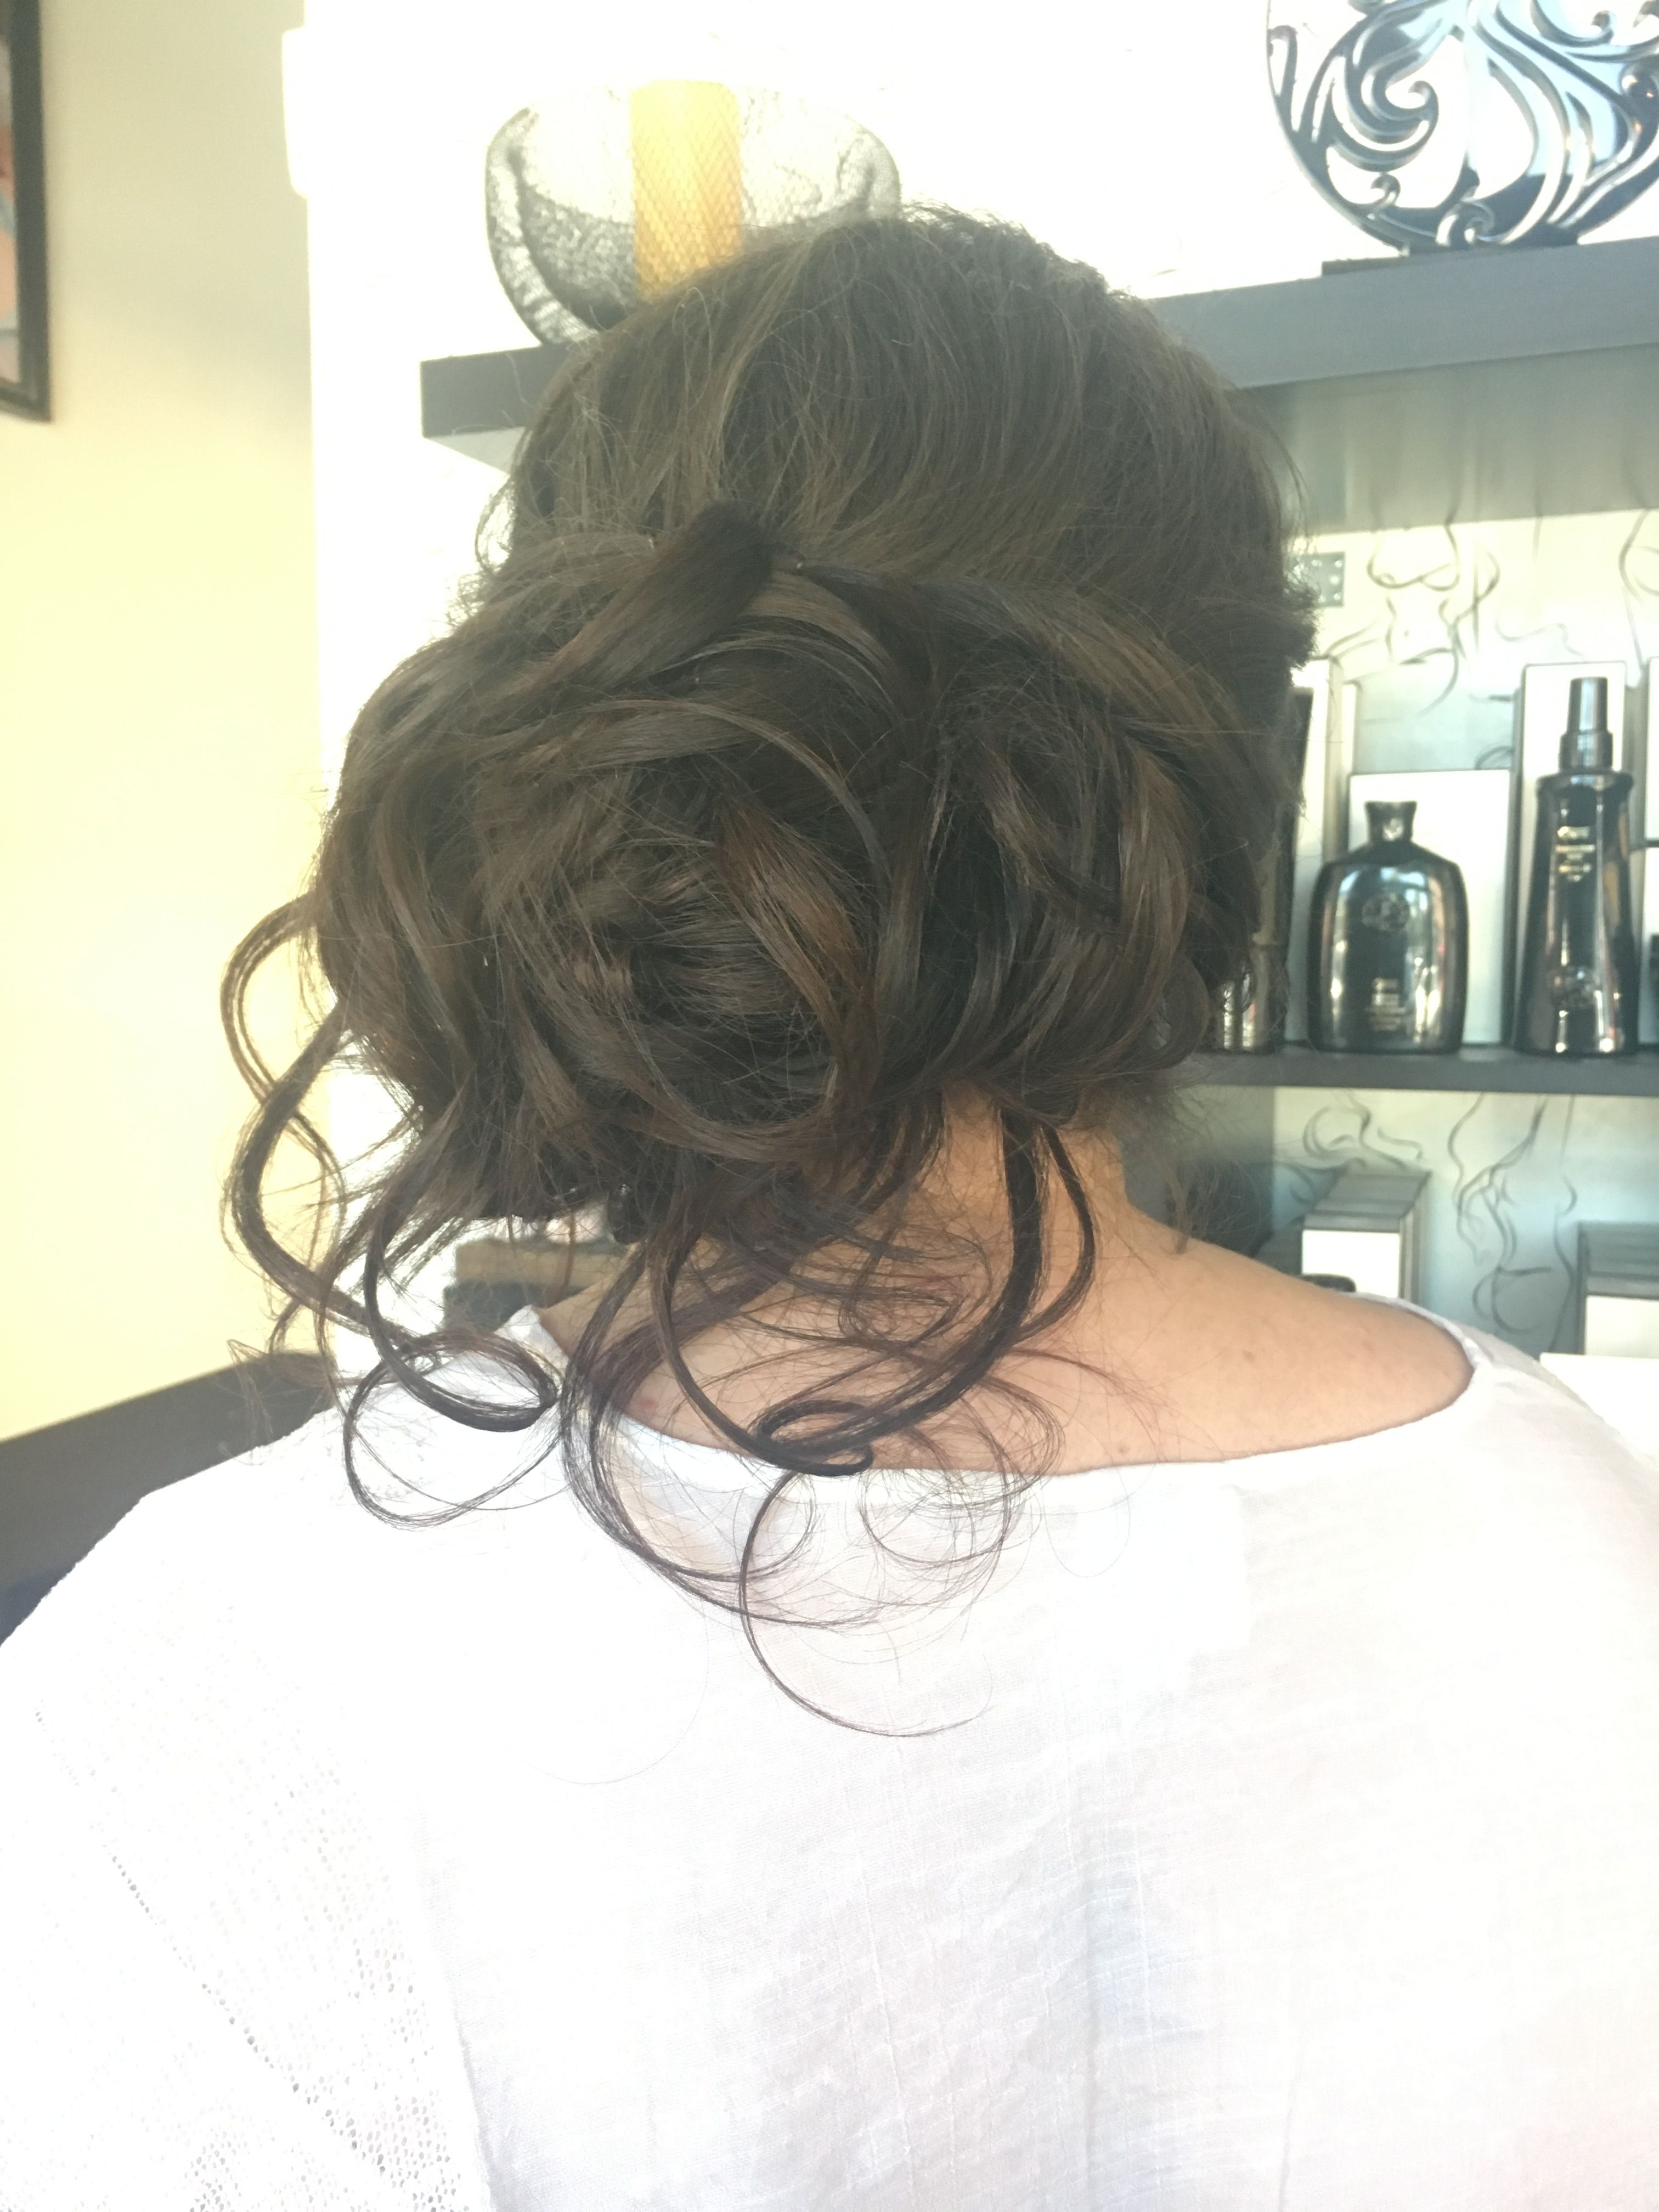 bridal hair by jillain at jluxe salon in syracuse new york